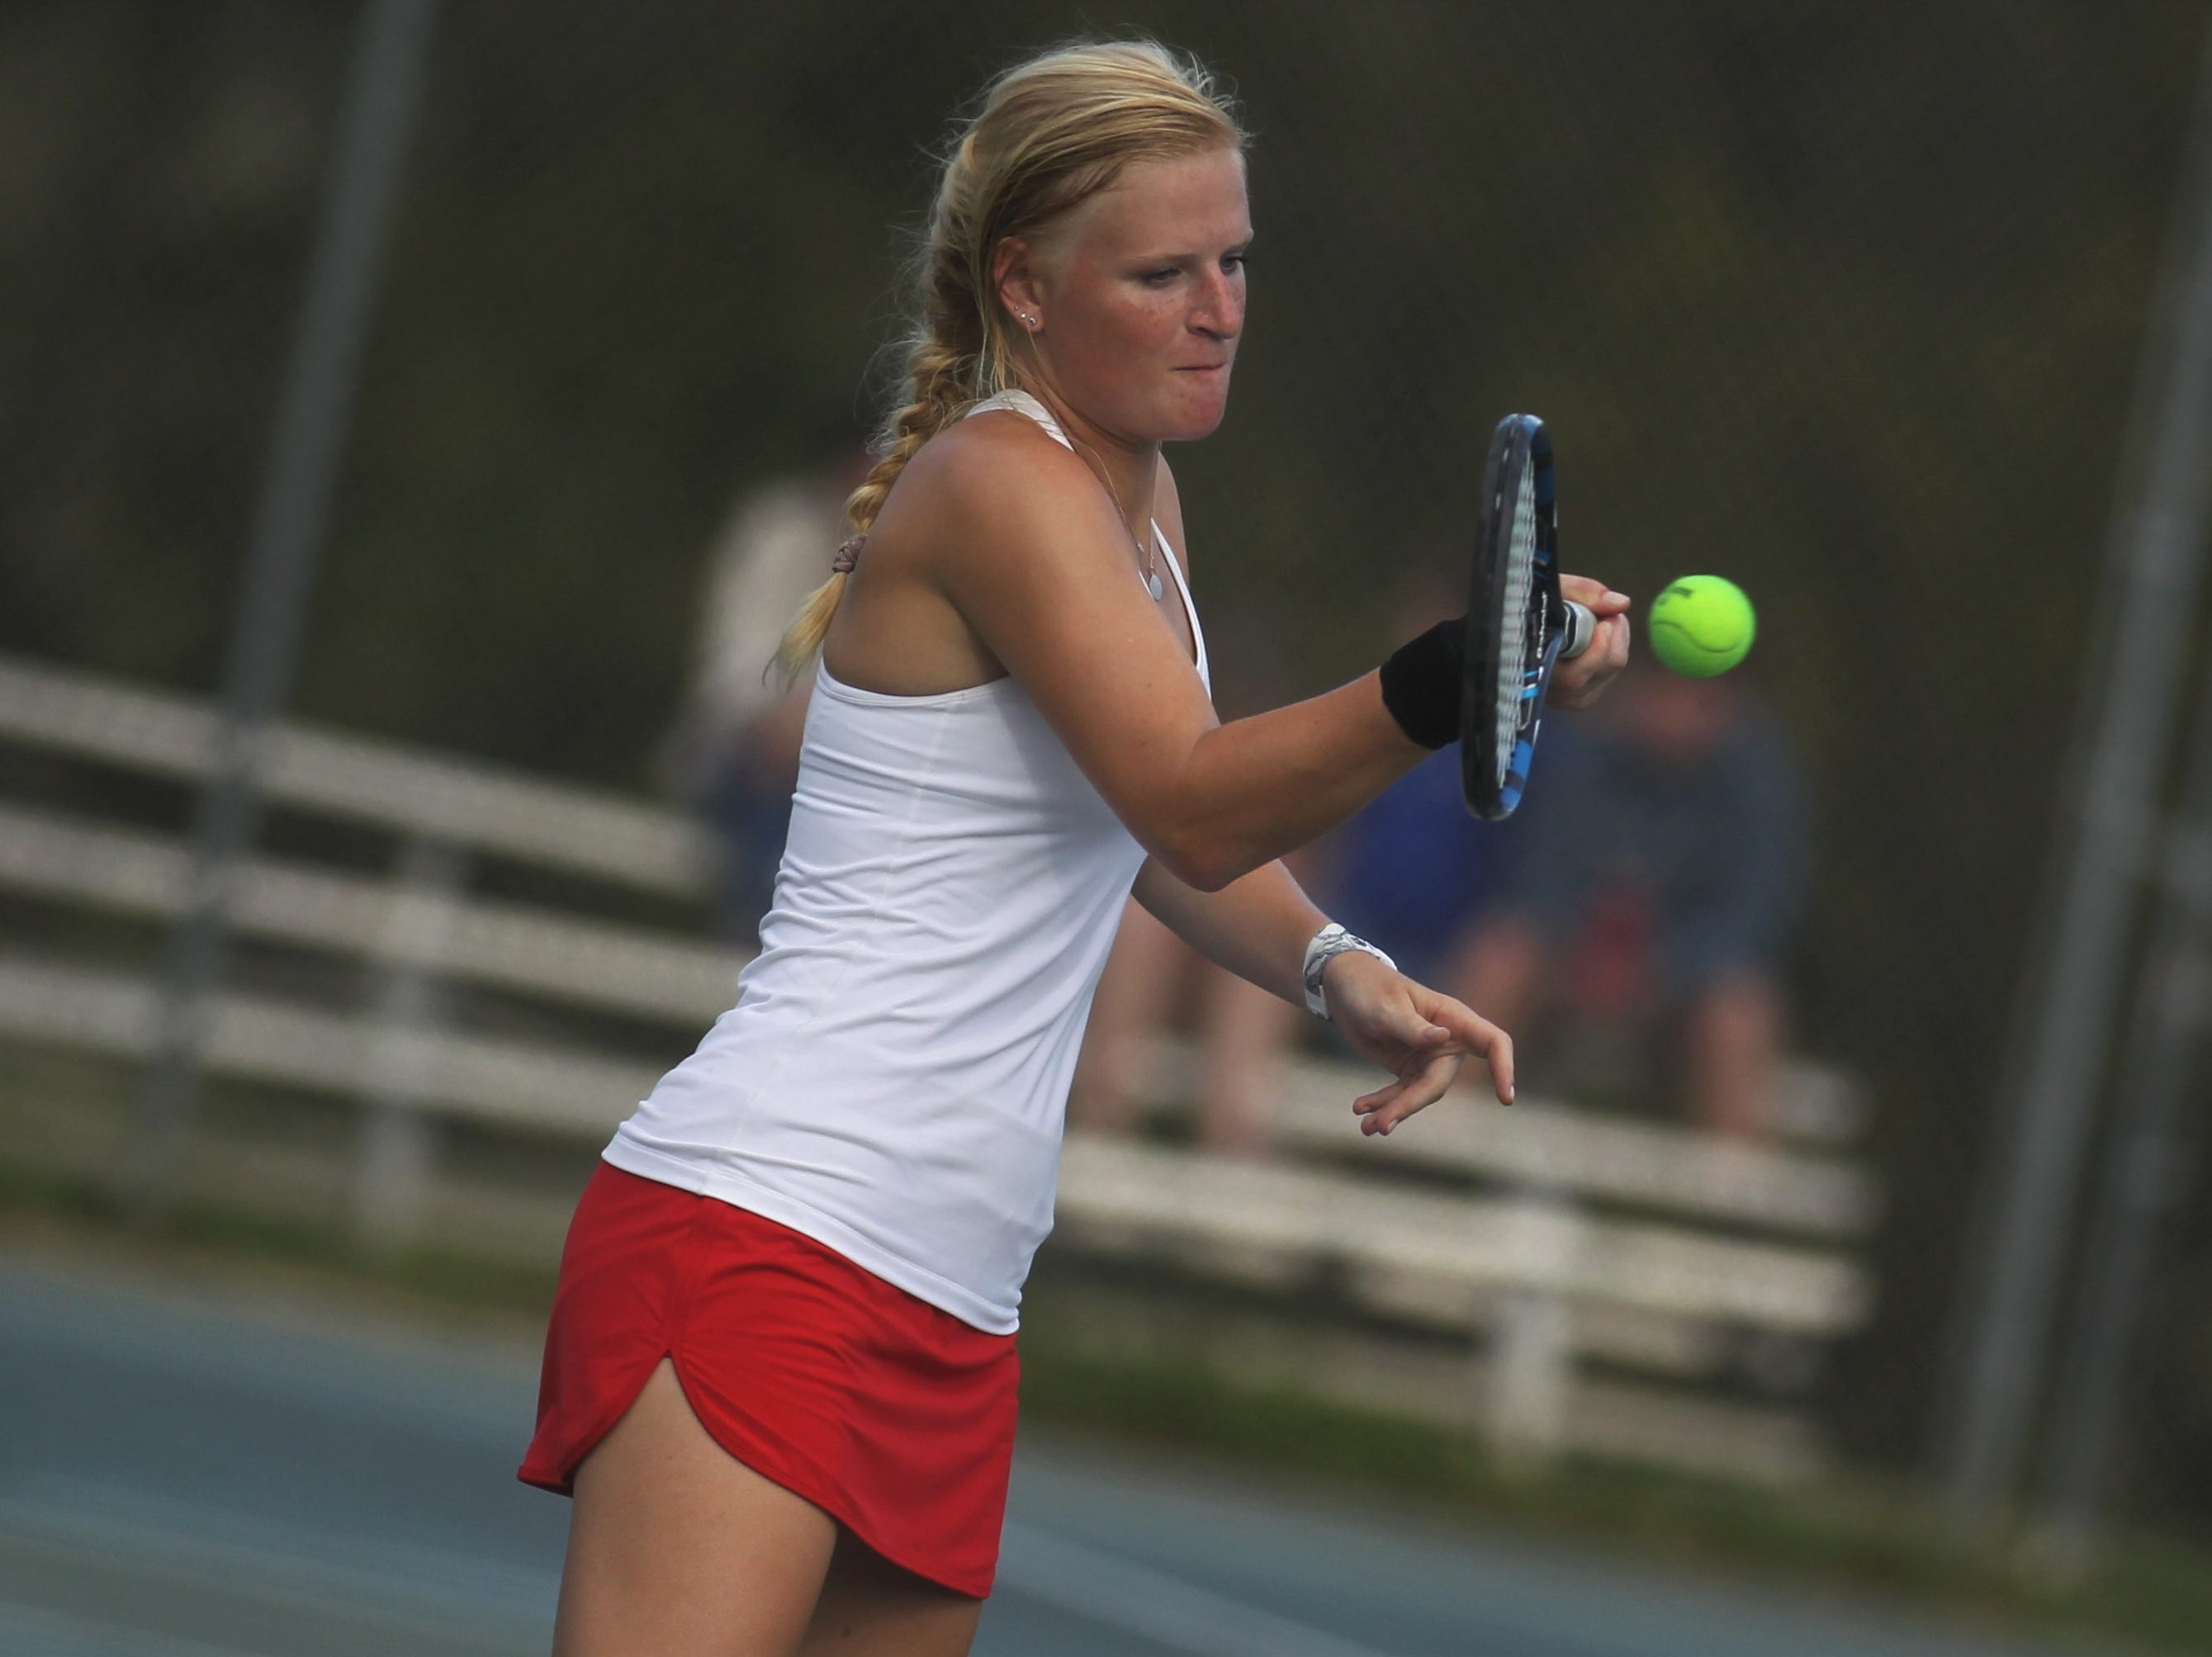 Leon senior Jules Grady plays during the high school boys and girls city tennis tournament at Tom Brown Park on Thursday, March 14, 2019.